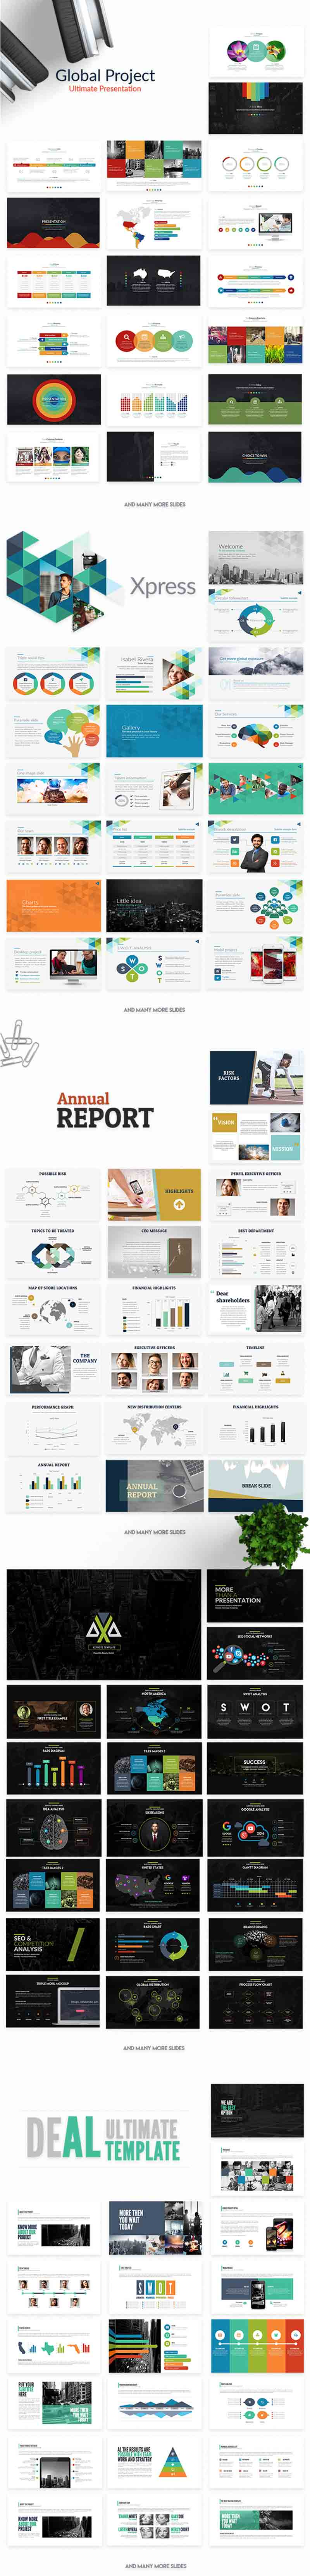 Powerpoint & Keynote Templates Cover 2